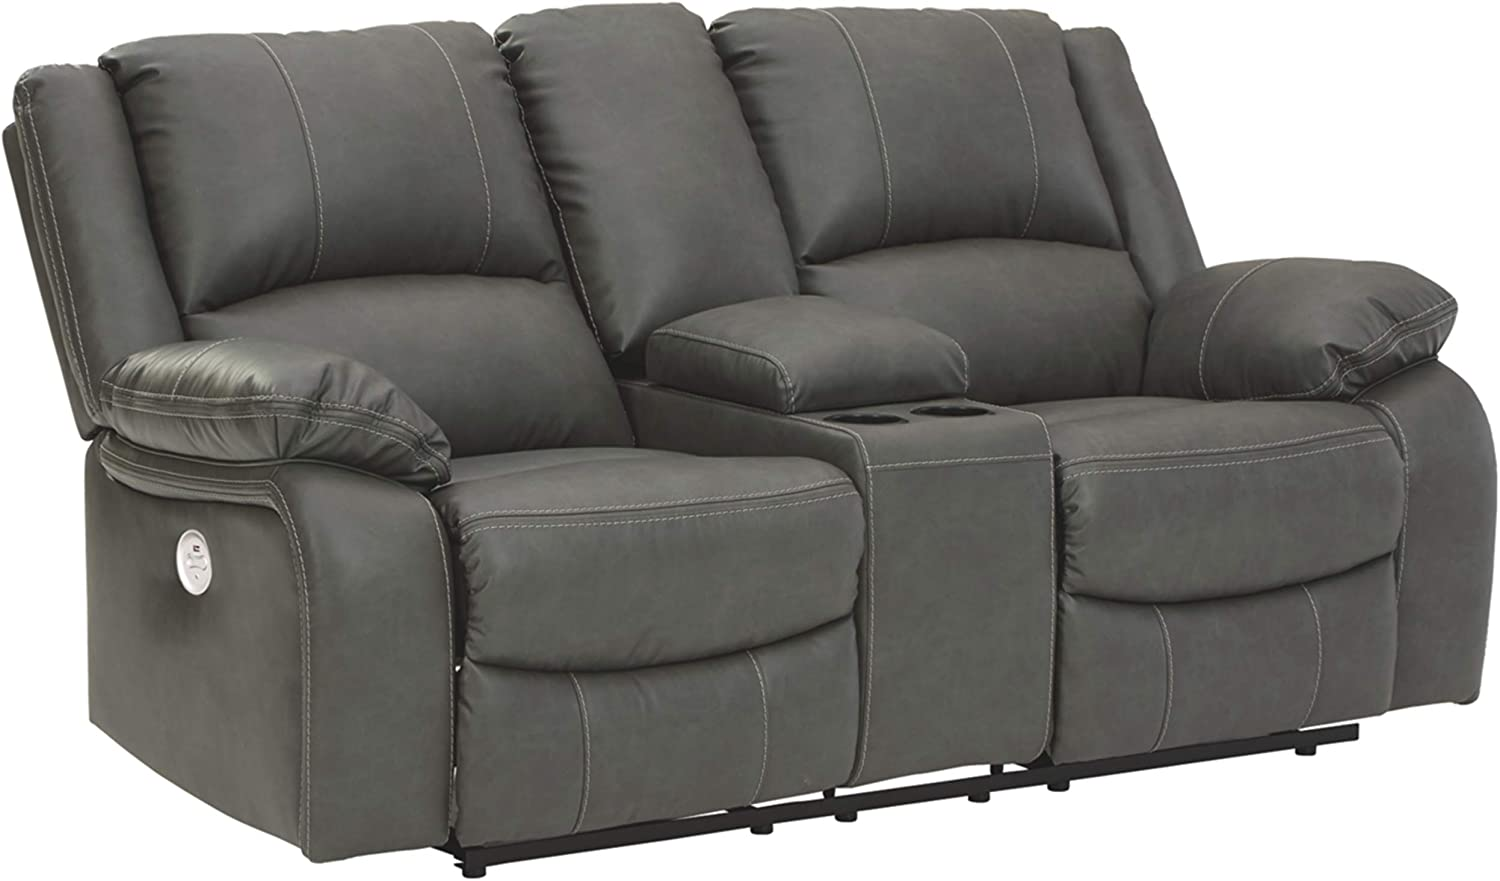 Signature Design by Ashley - Calderwell Contemporary Faux Leather Double Power Reclining Loveseat w/ Console - Gray